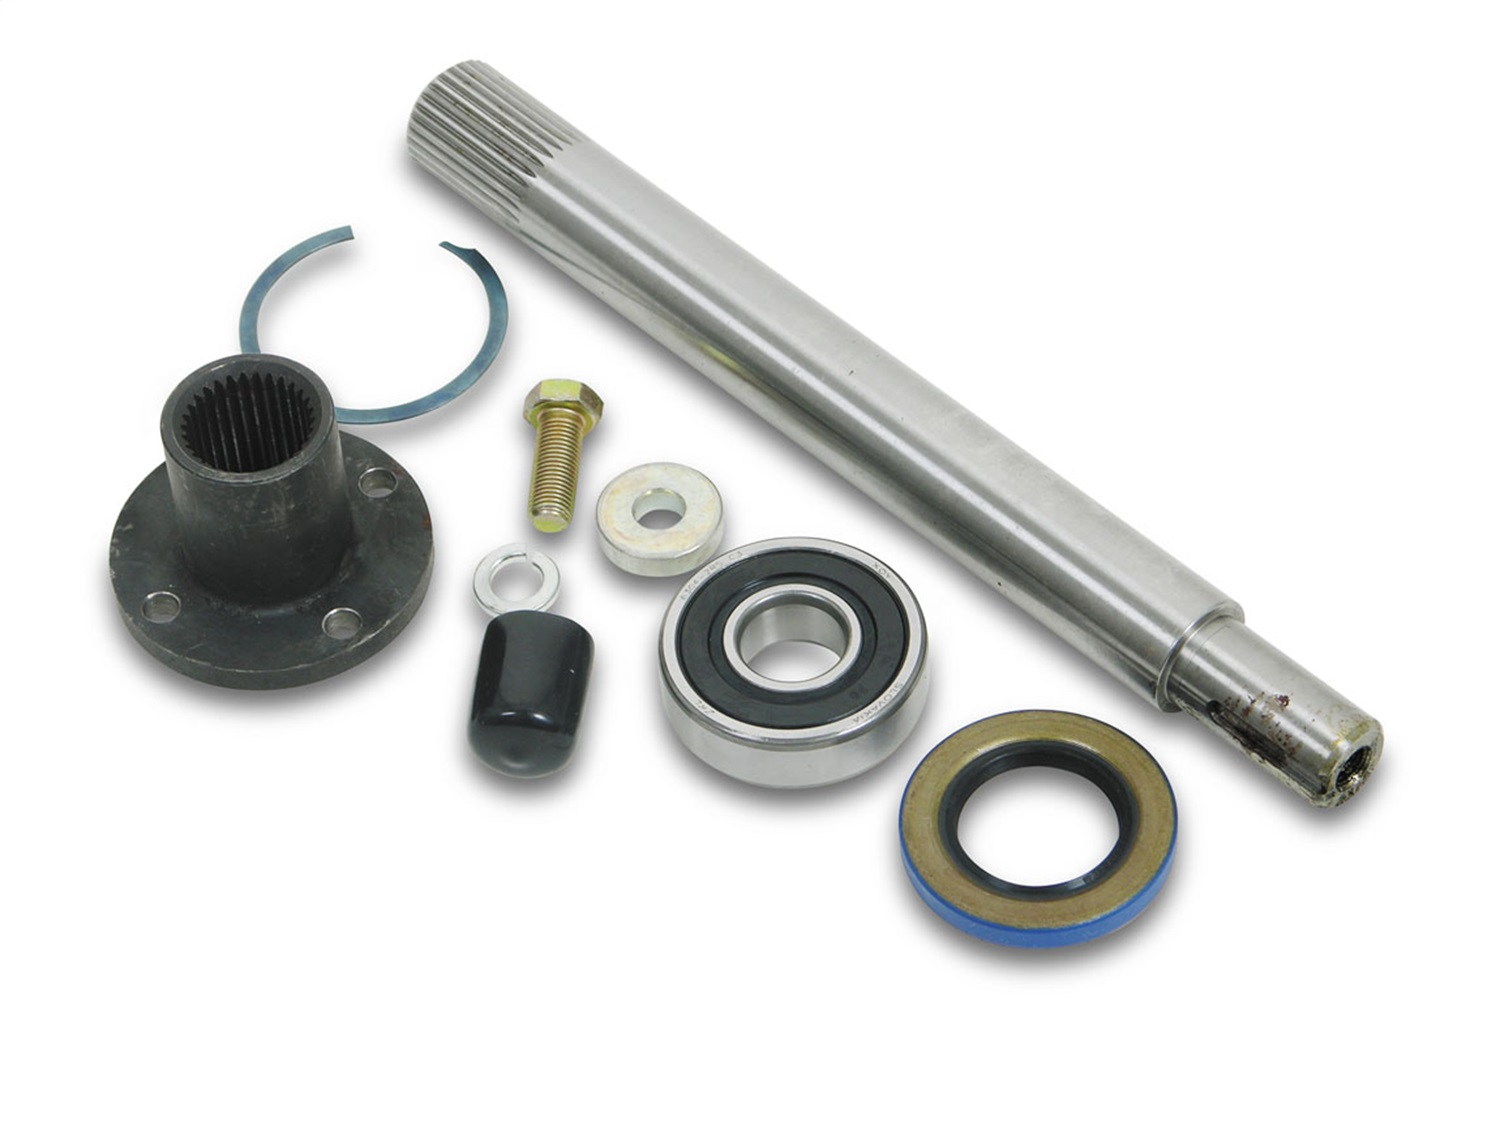 Weiand 91180 PowerCharger Input Shaft/Coupler Kit